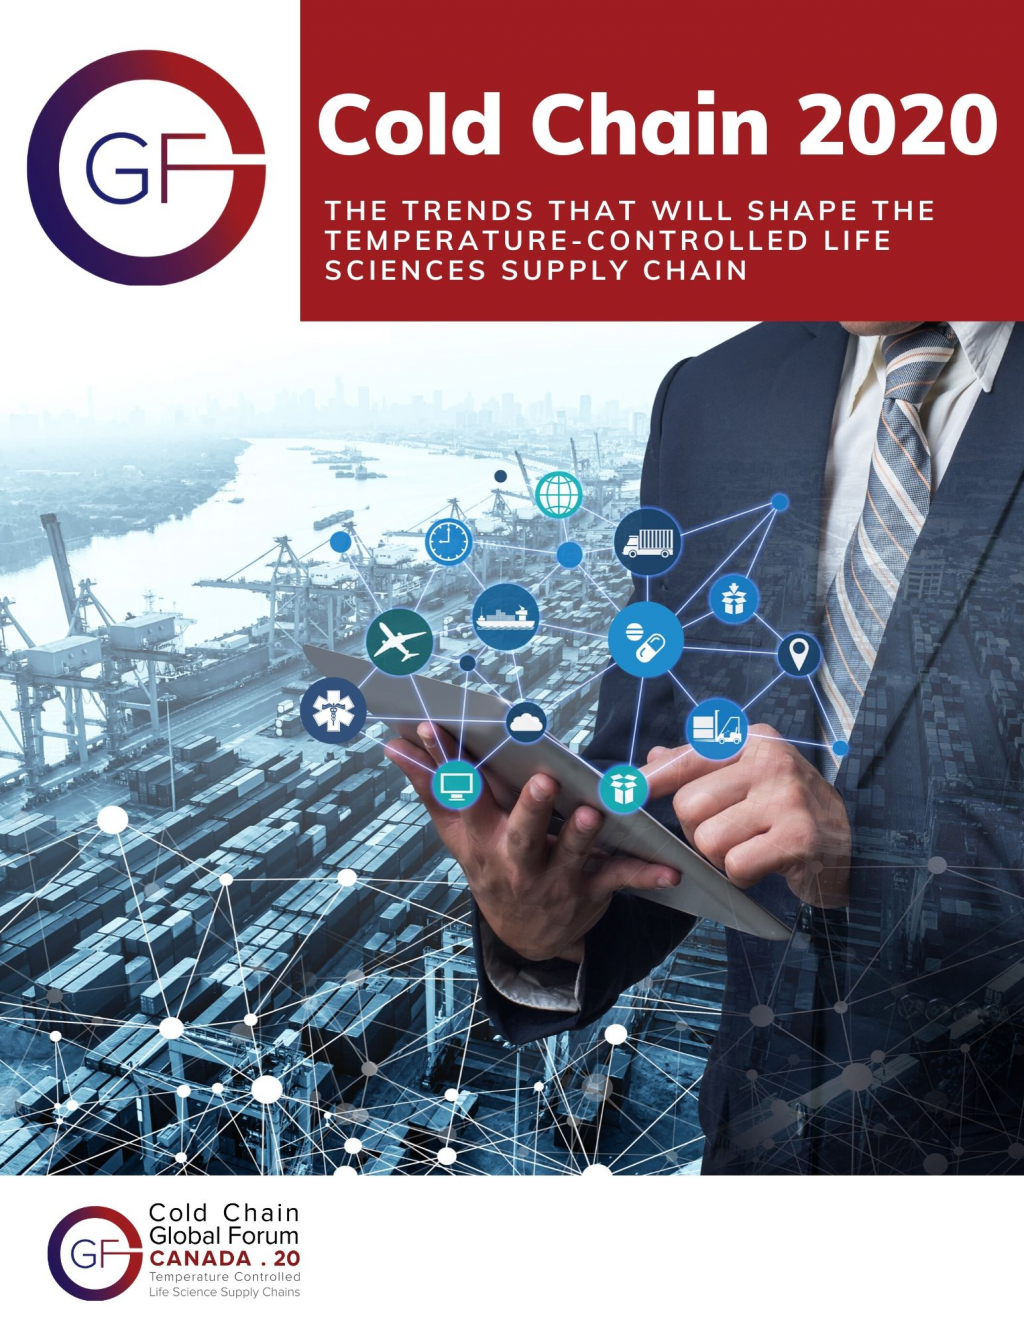 Cold Chain 2020: The Top Trends Shaping the Year Ahead